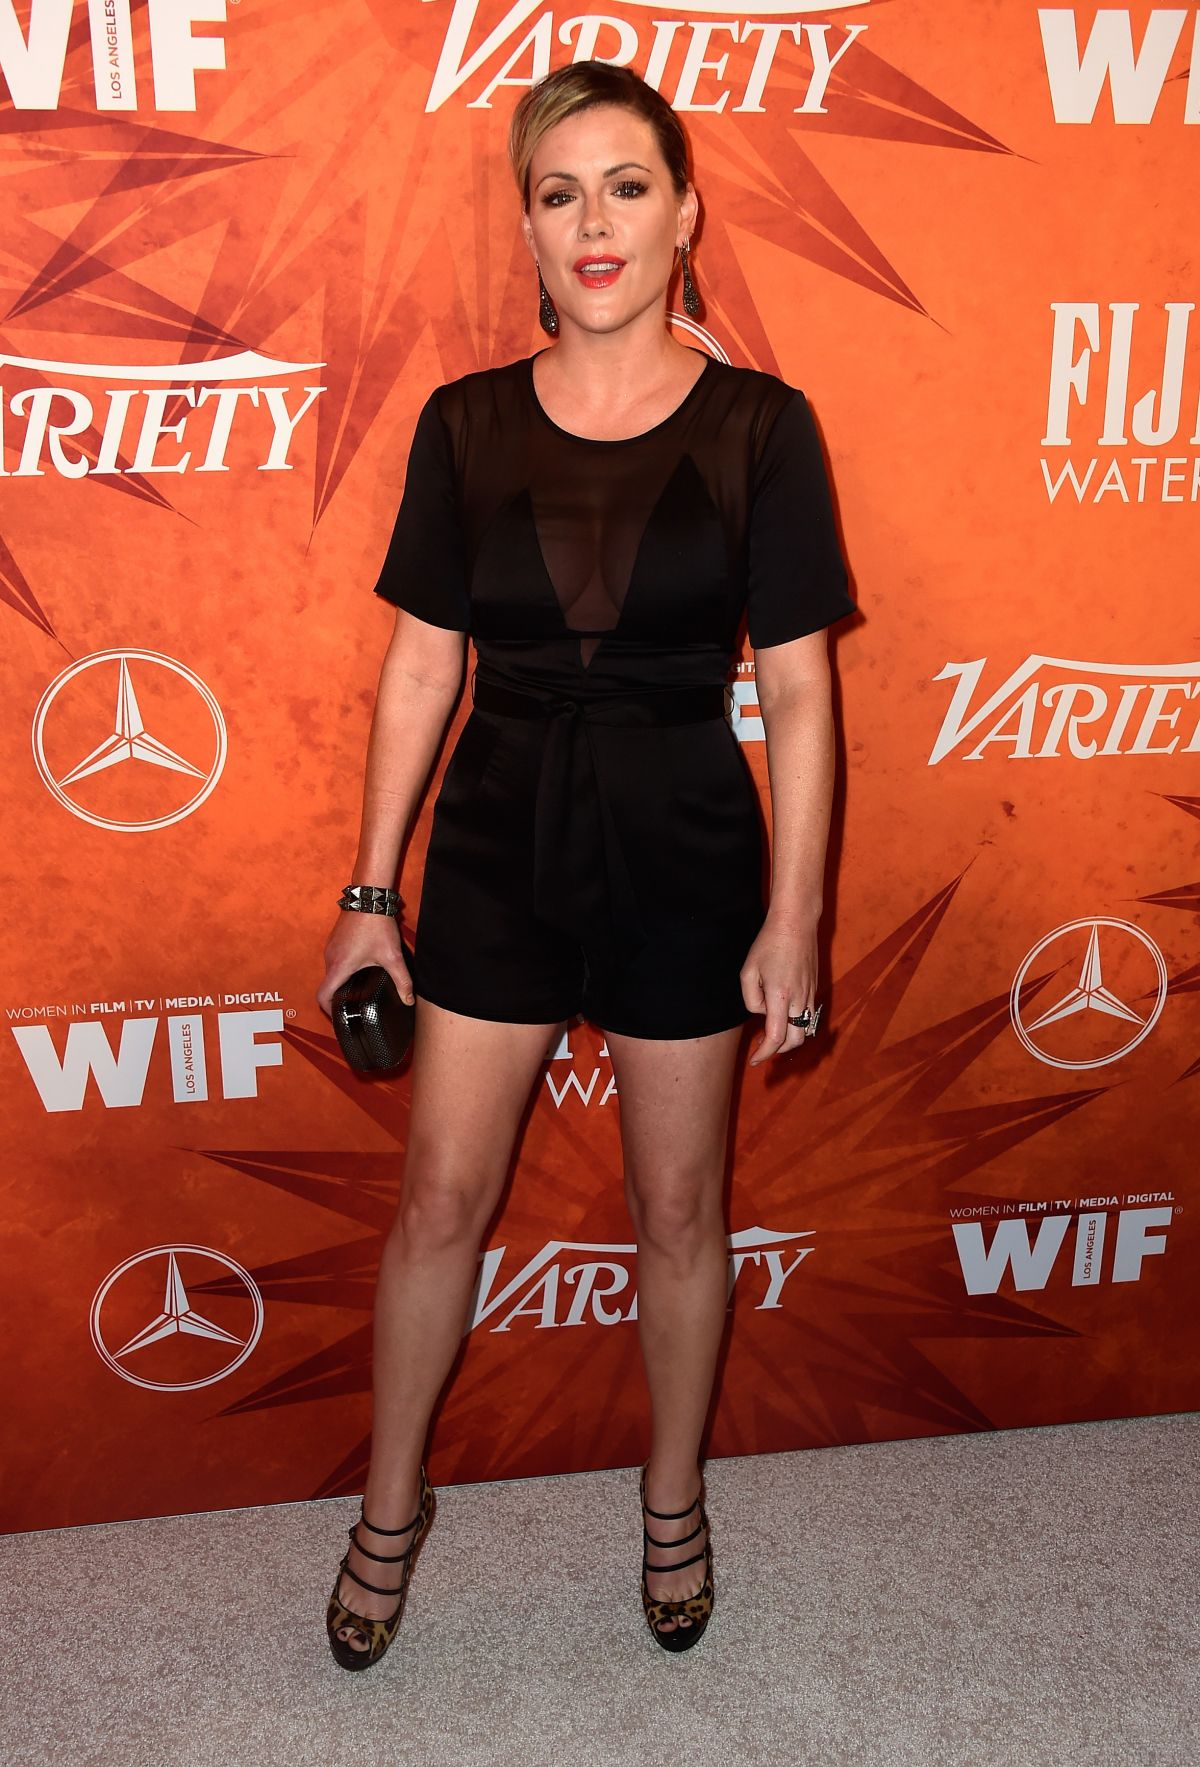 KATHLEEN ROBERTSON at Variety and Women in Film Annual Pre-emmy Celebration in West Hollywood 09/18/20